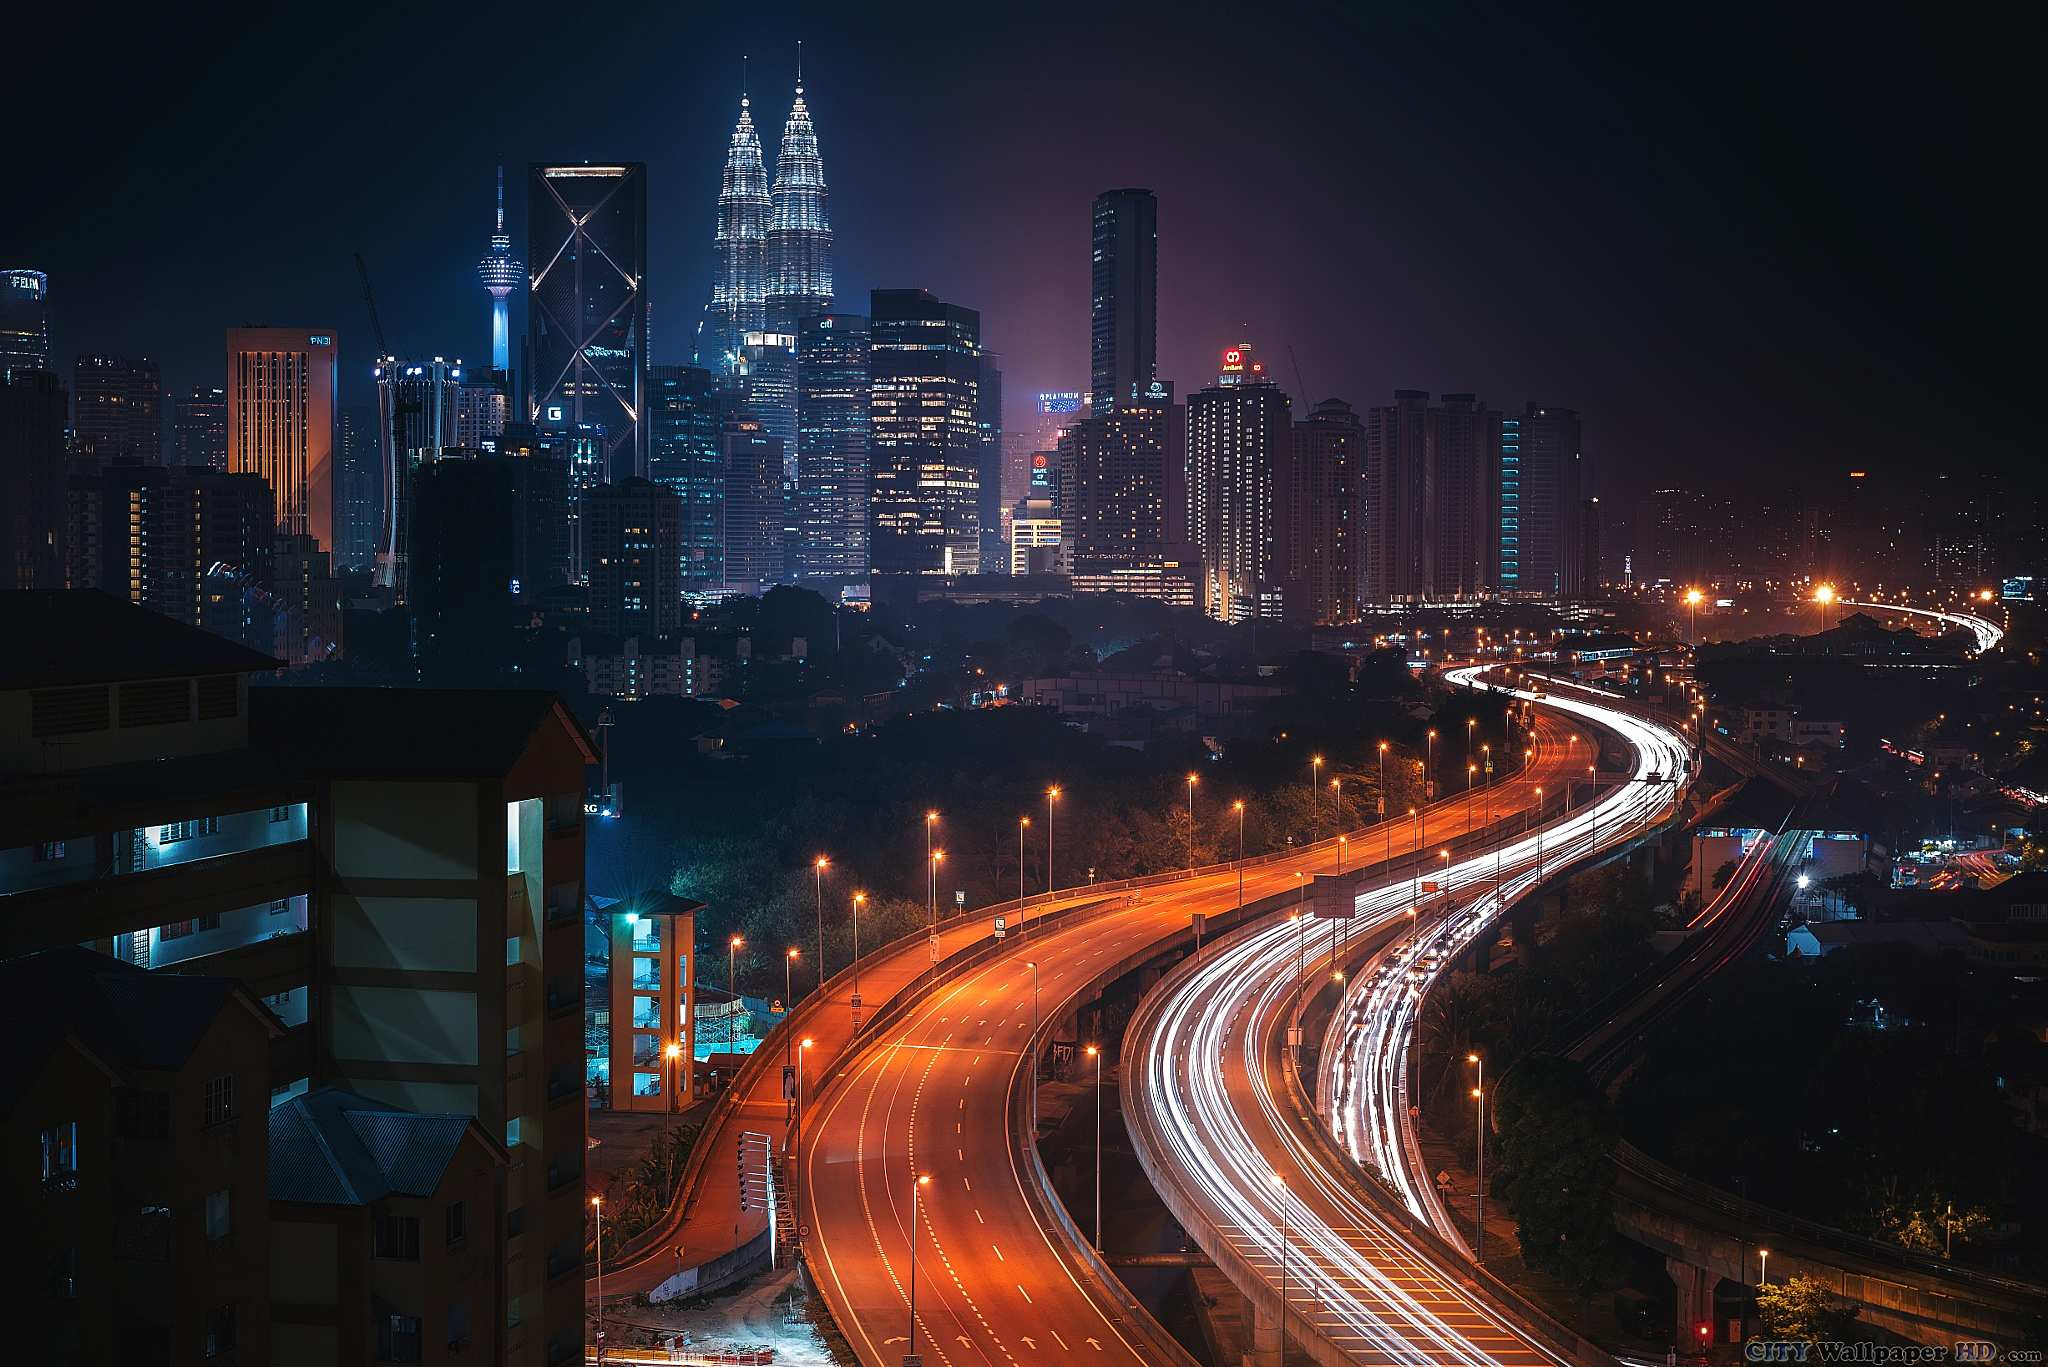 Kuala Lumpur wallpaper. Wallpapers of cities for mobile phones ...